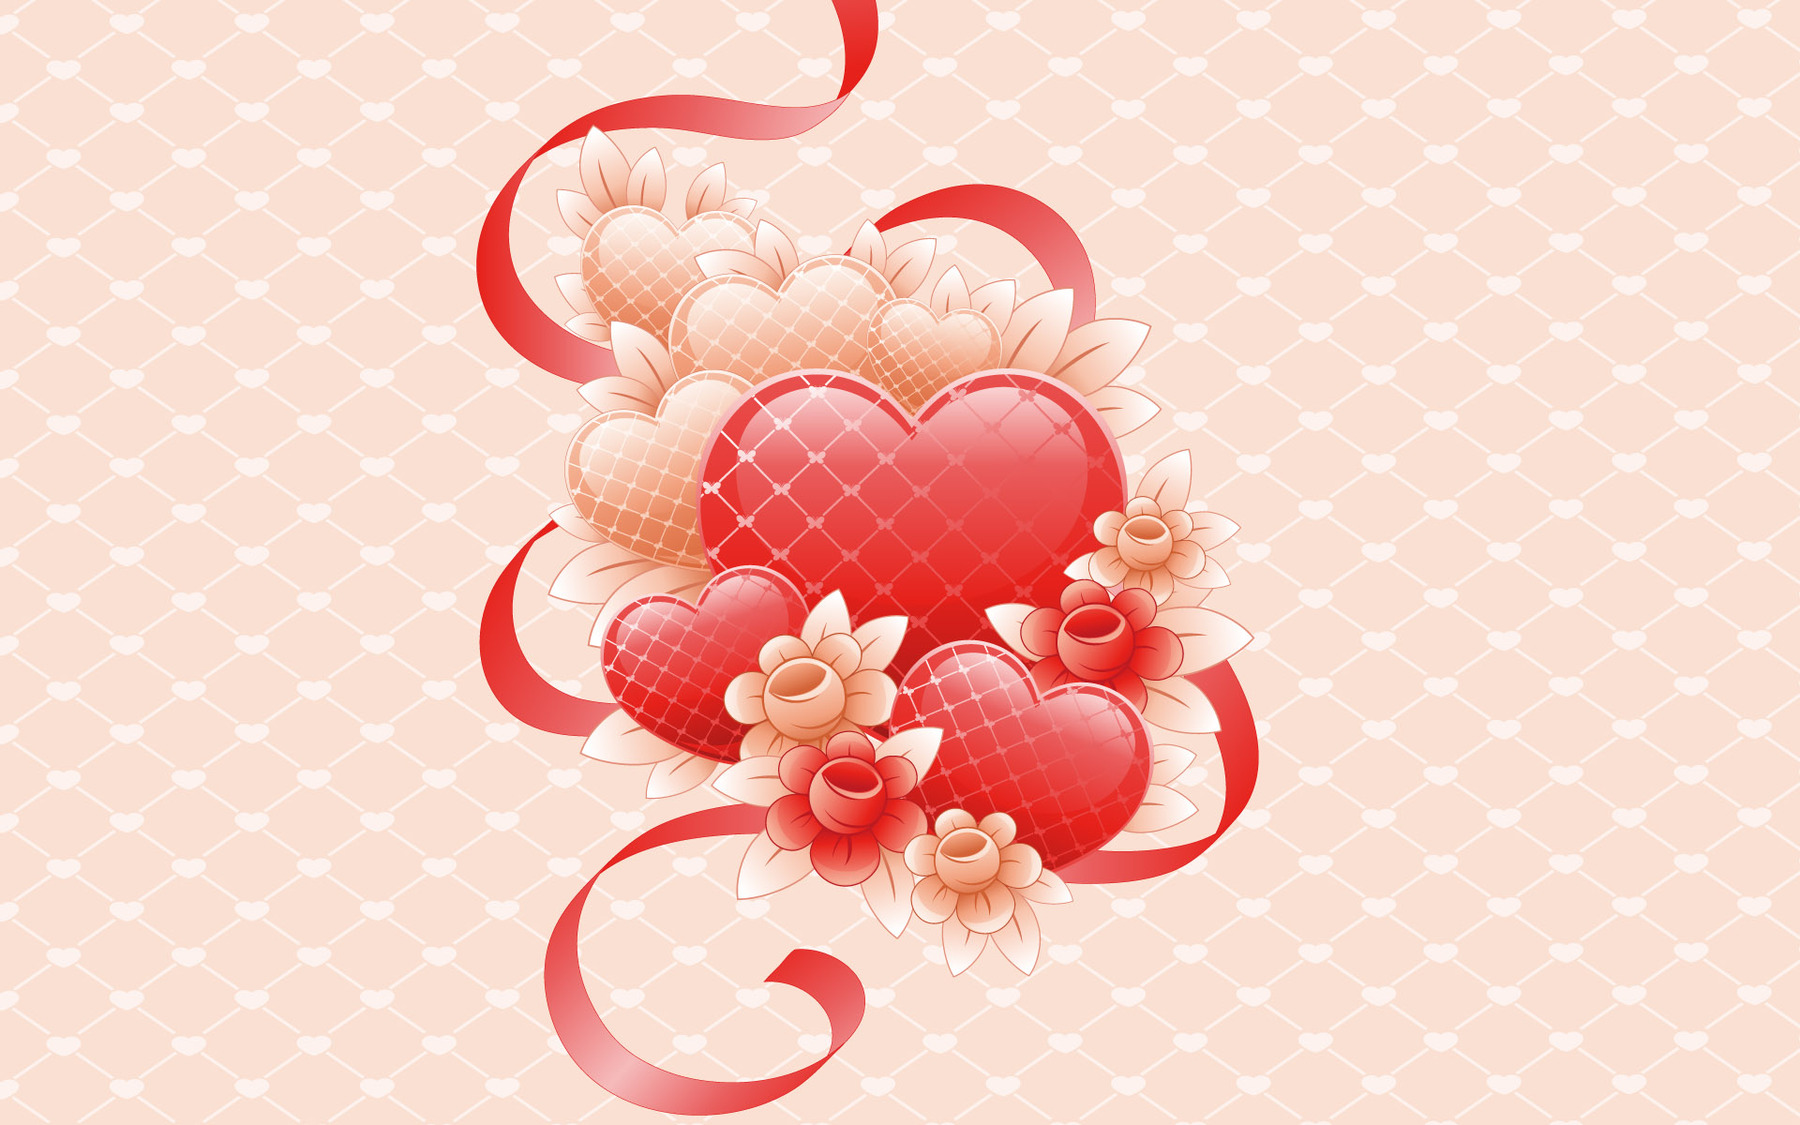 Cute 3D Valentines Day Heart Picture wallpaper Wallpapers   HD 1800x1125